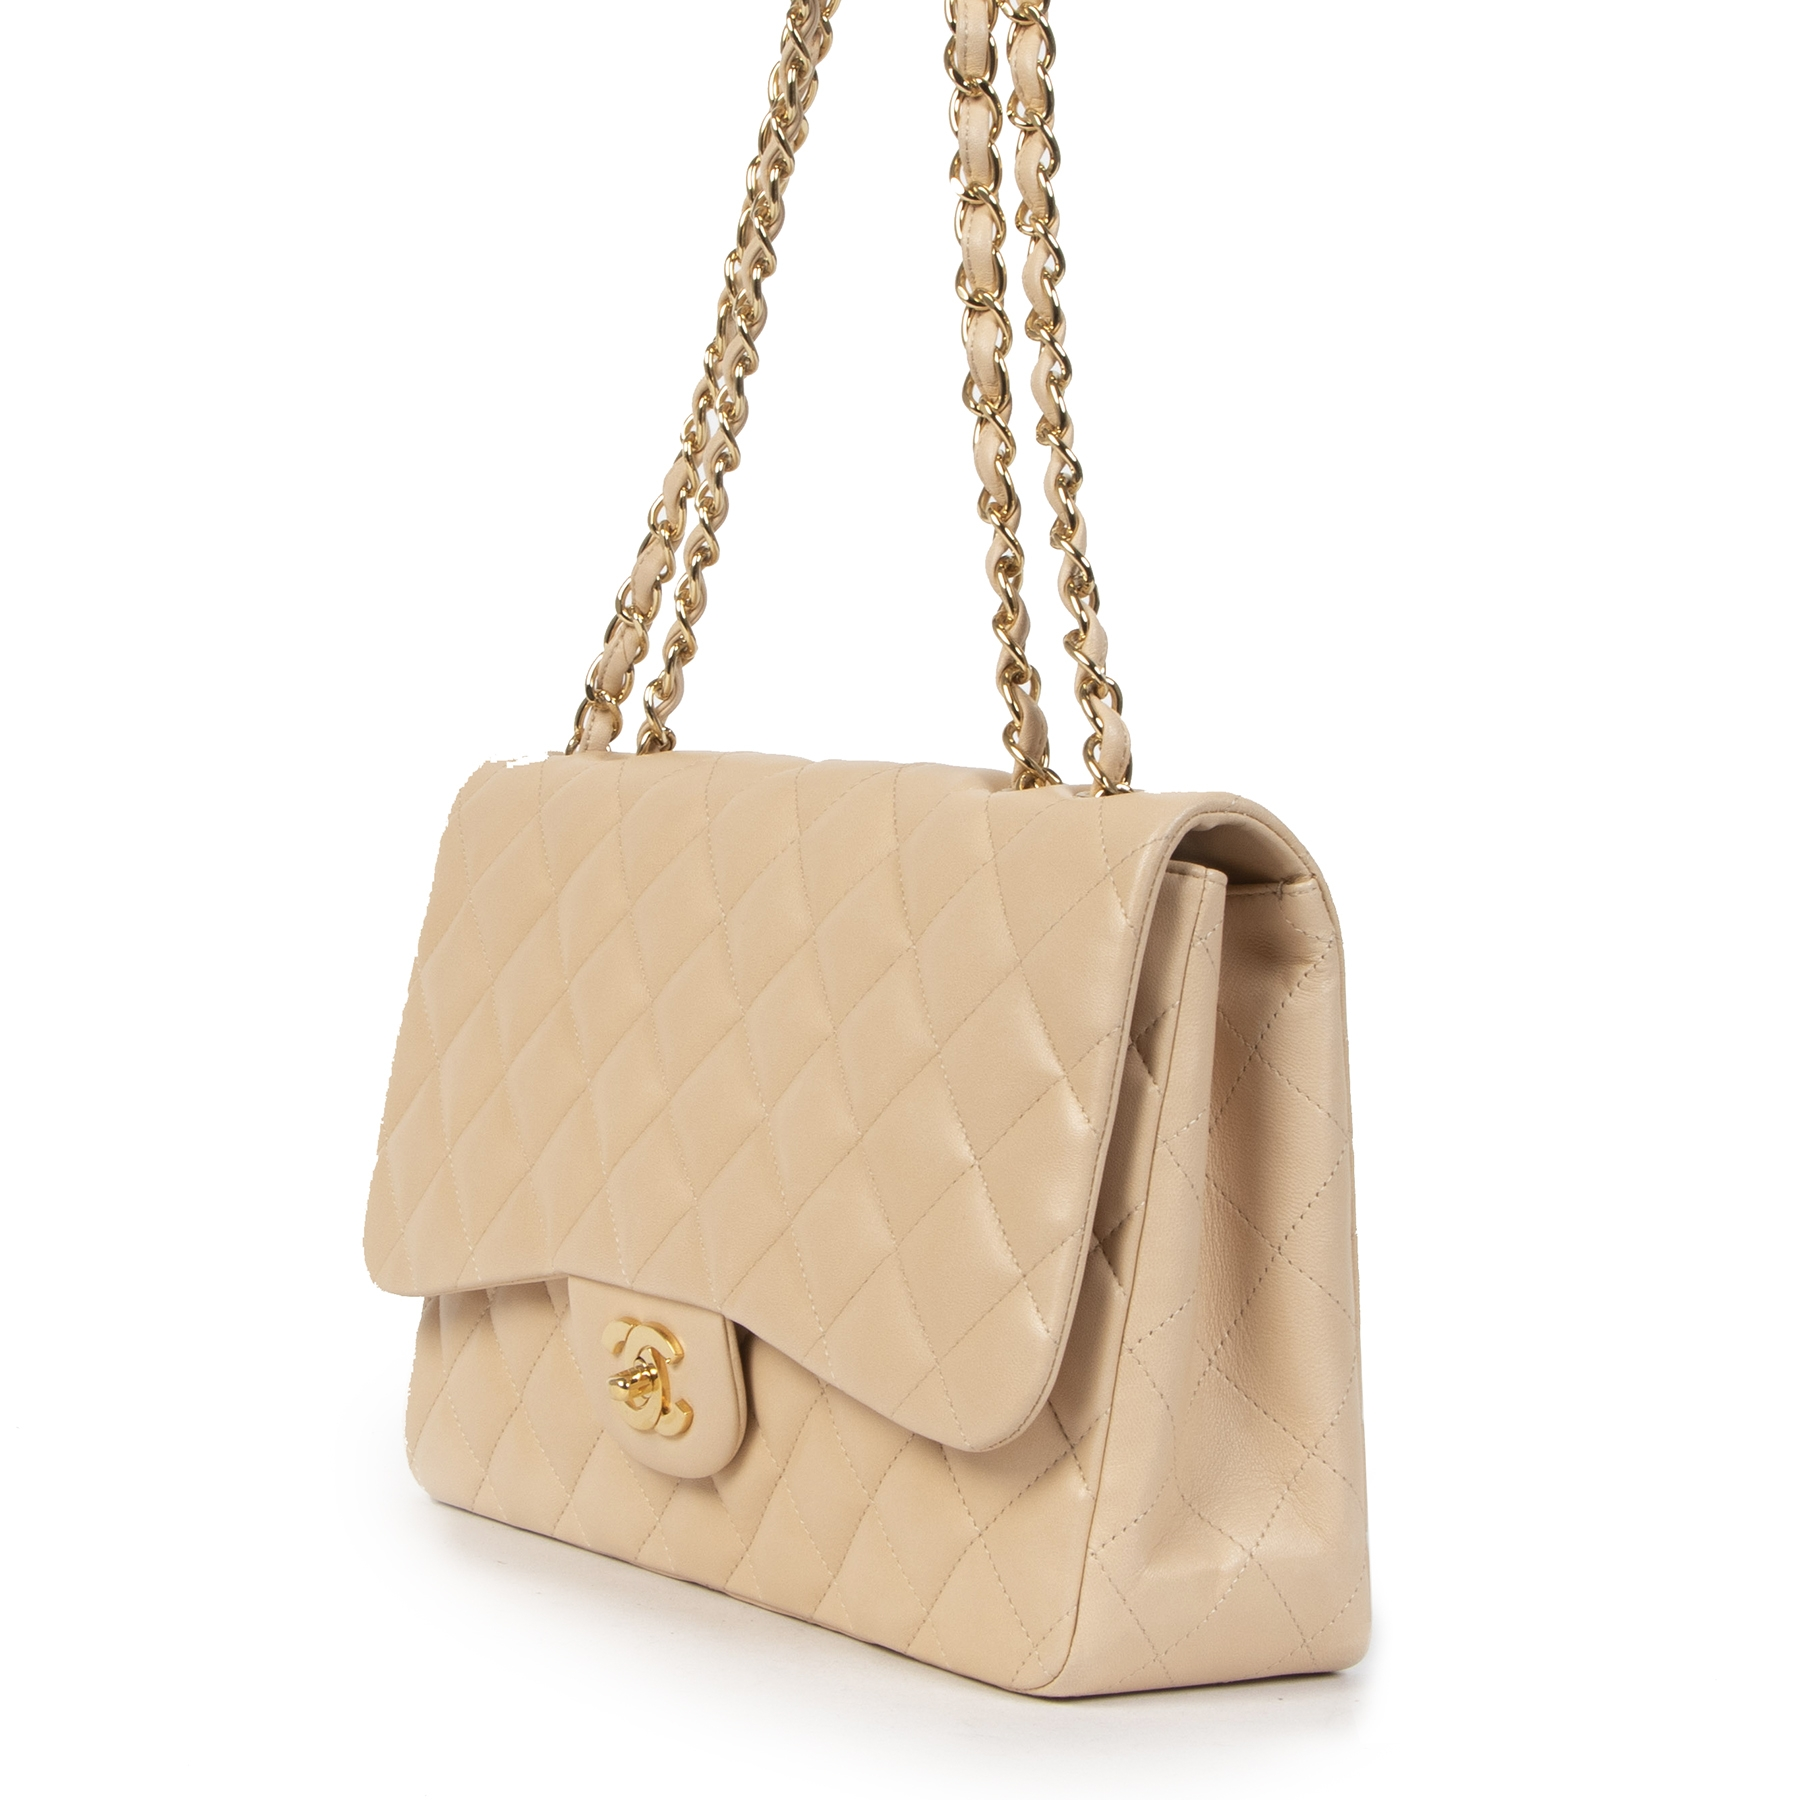 Buy authentic secondhand Chanel Beige Lambskin Classic Single Flap Jumbos at the right price at LabelLOV vintage webshop. Safe and secure online shopping. Koop authentieke tweedehands Chanel Beige Lambskin Classic Single Flap Jumbo met de juiste prijs bij